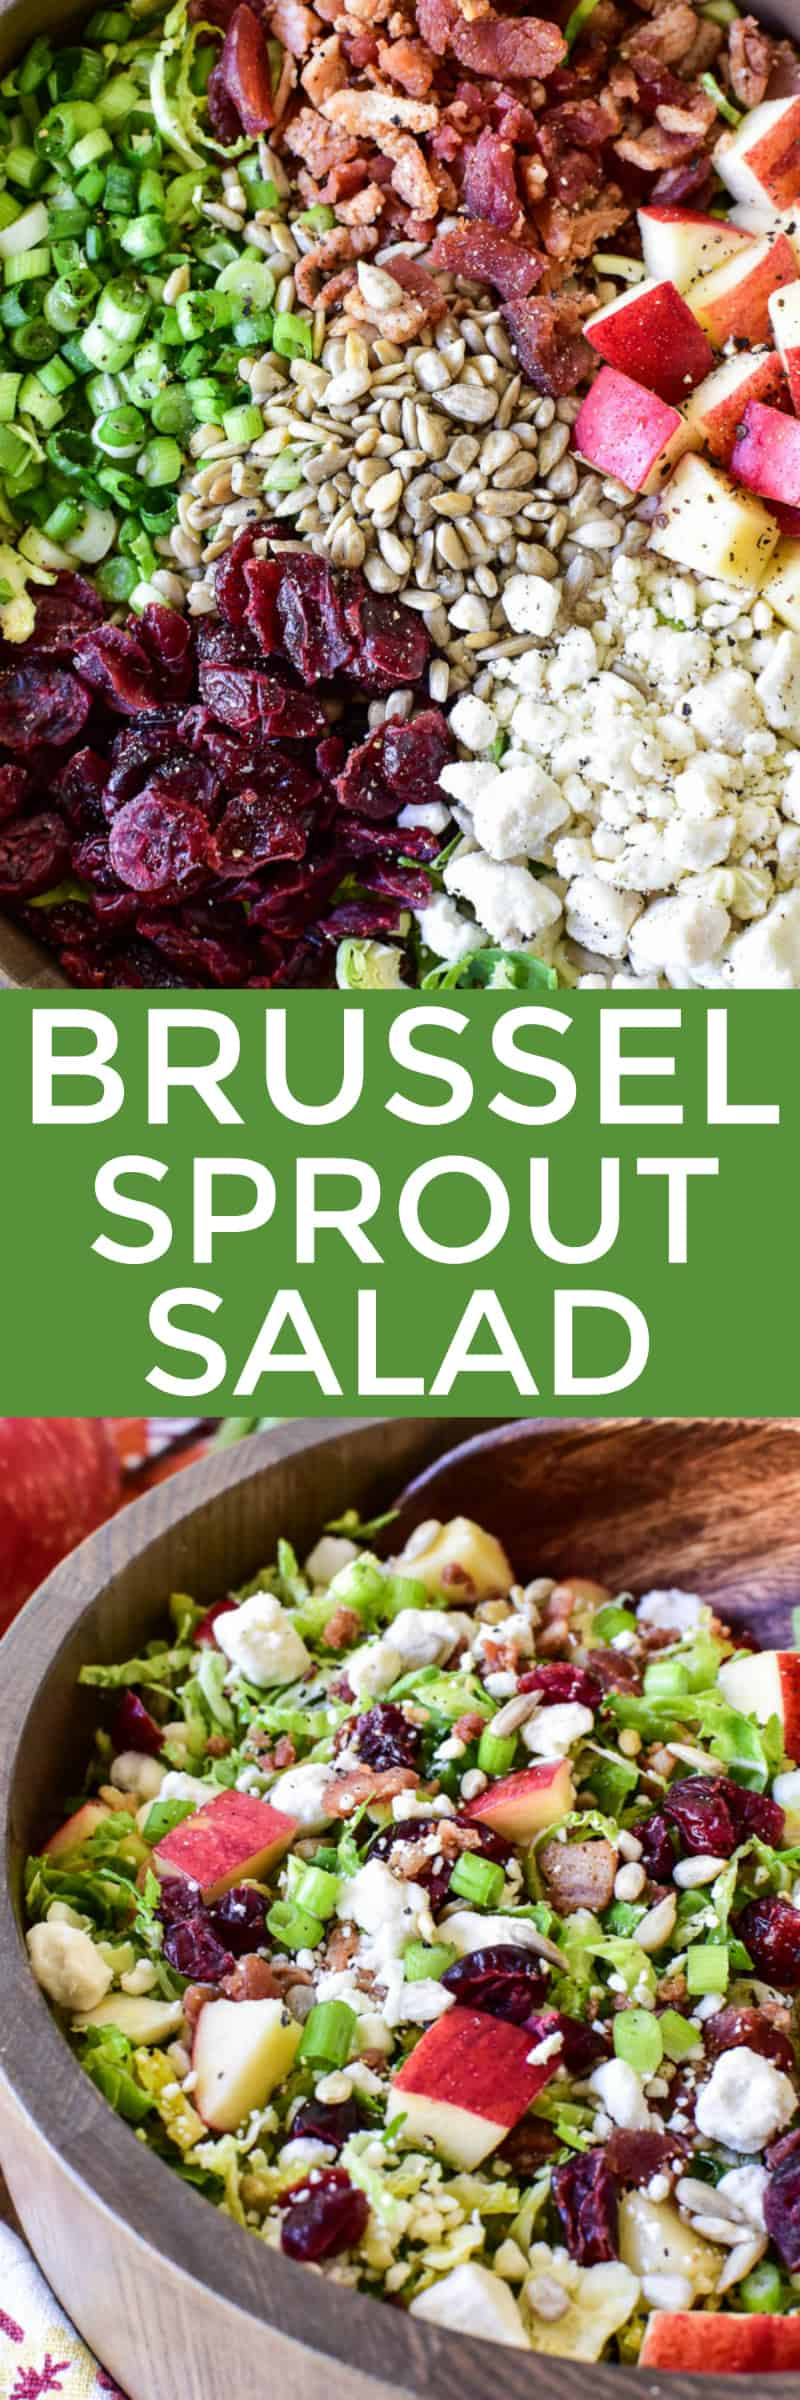 Collage image of Brussel Sprout Salad & ingredients